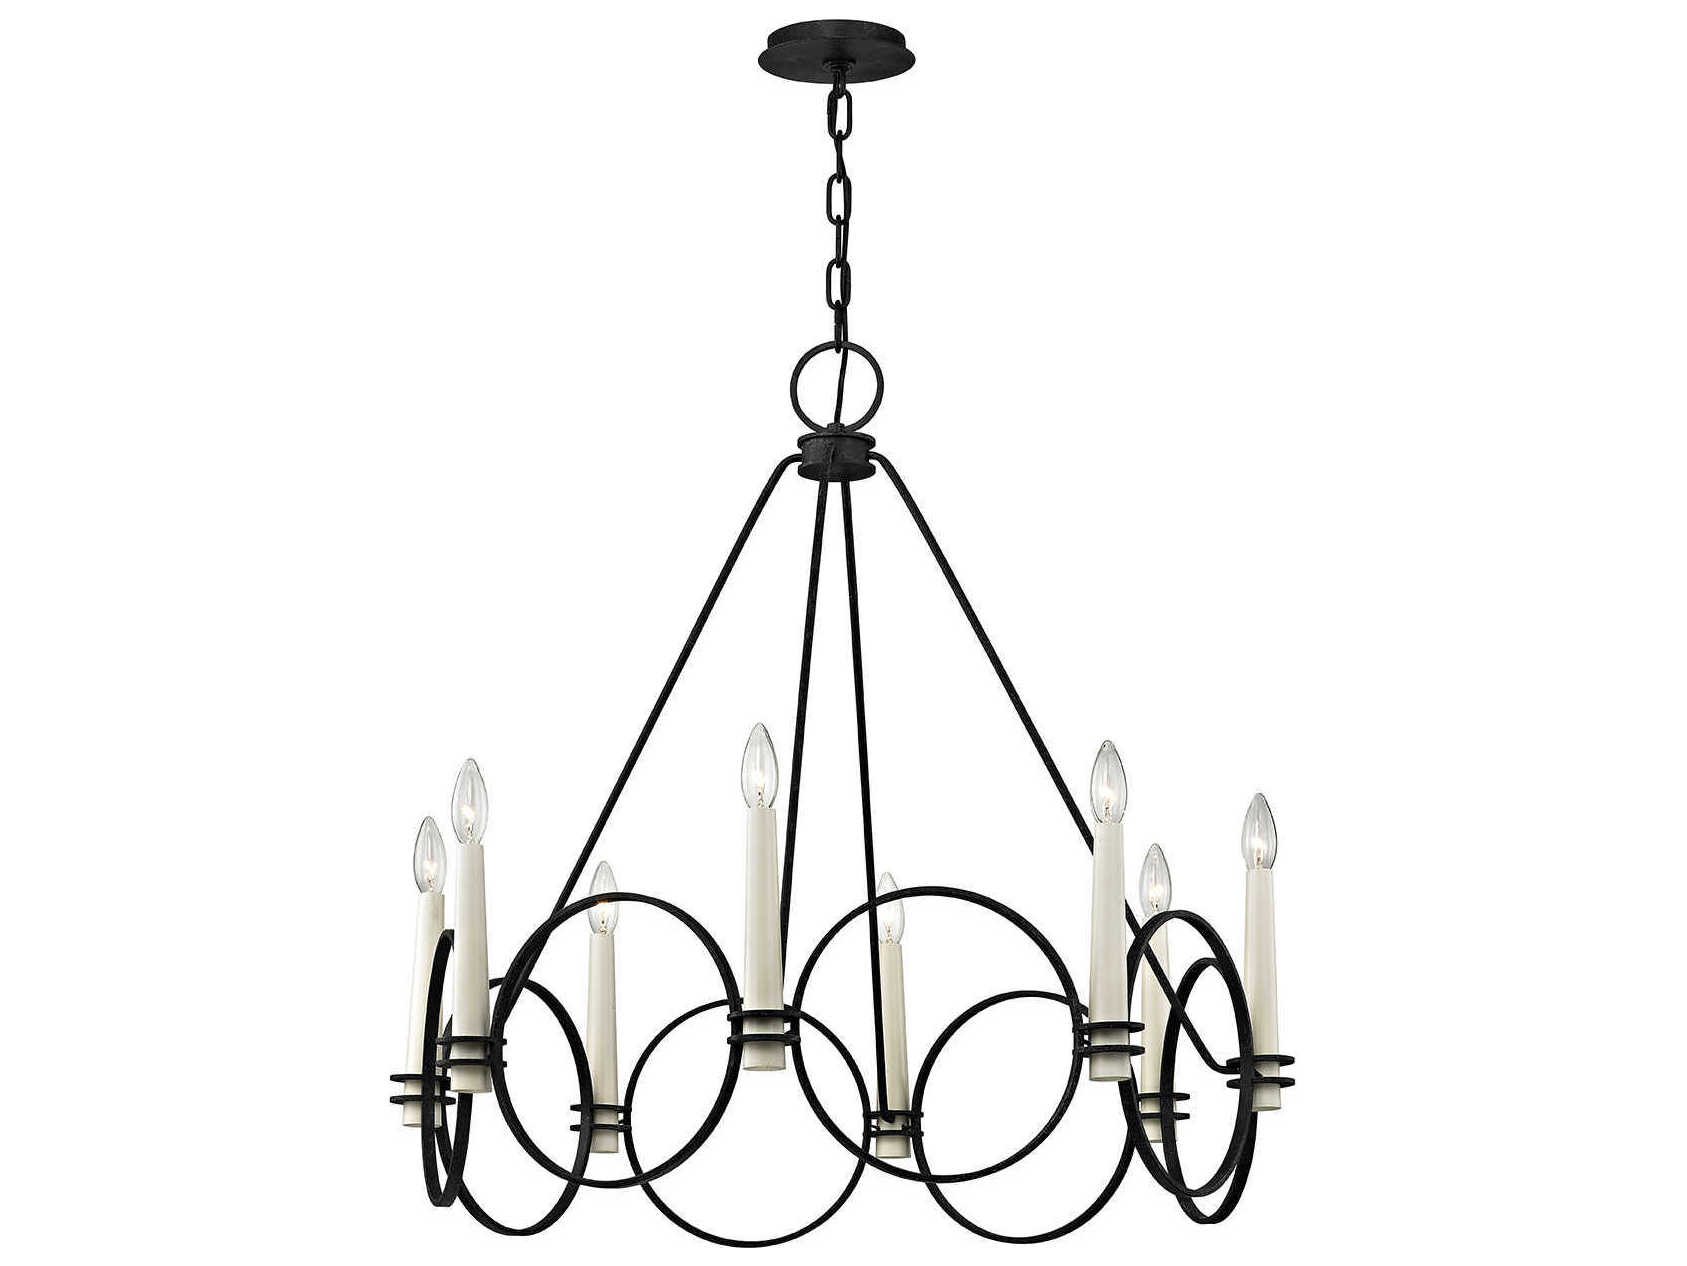 Troy Lighting Juliette Country Iron Eight Light 32 Wide